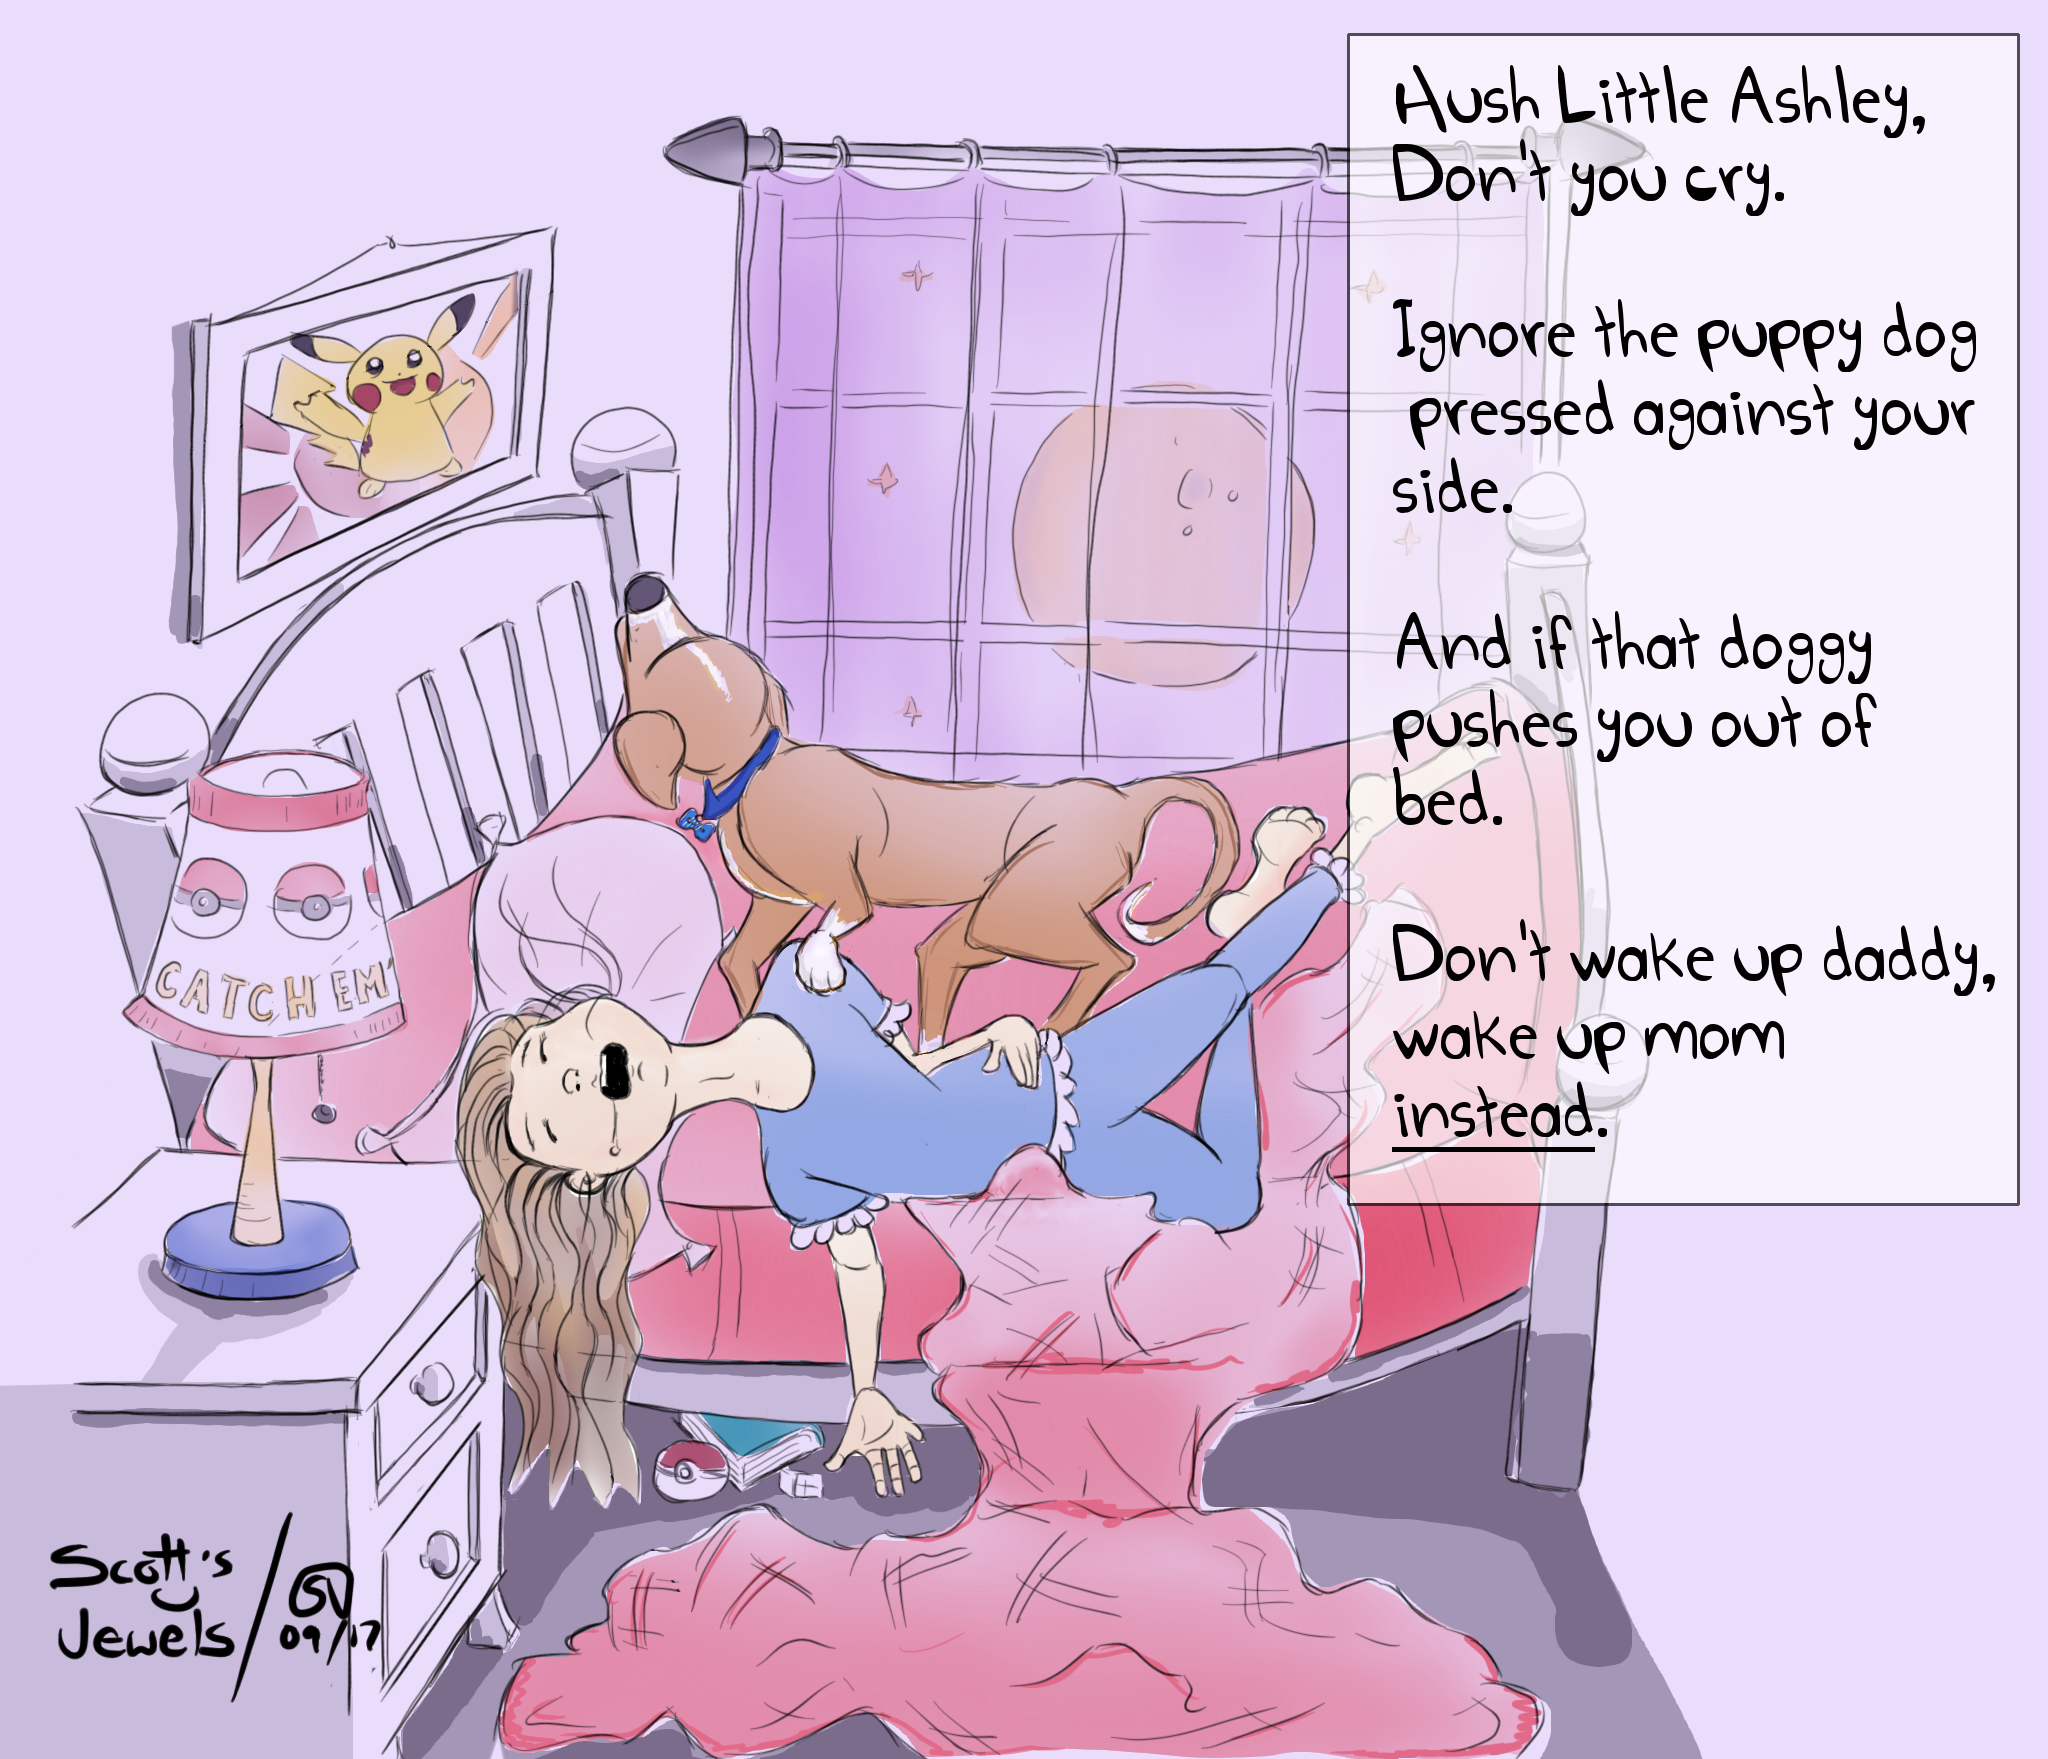 lullaby bedtime bedroom sleepy tucking into bed daughter sleeping with pets dog lover parenting fail comic